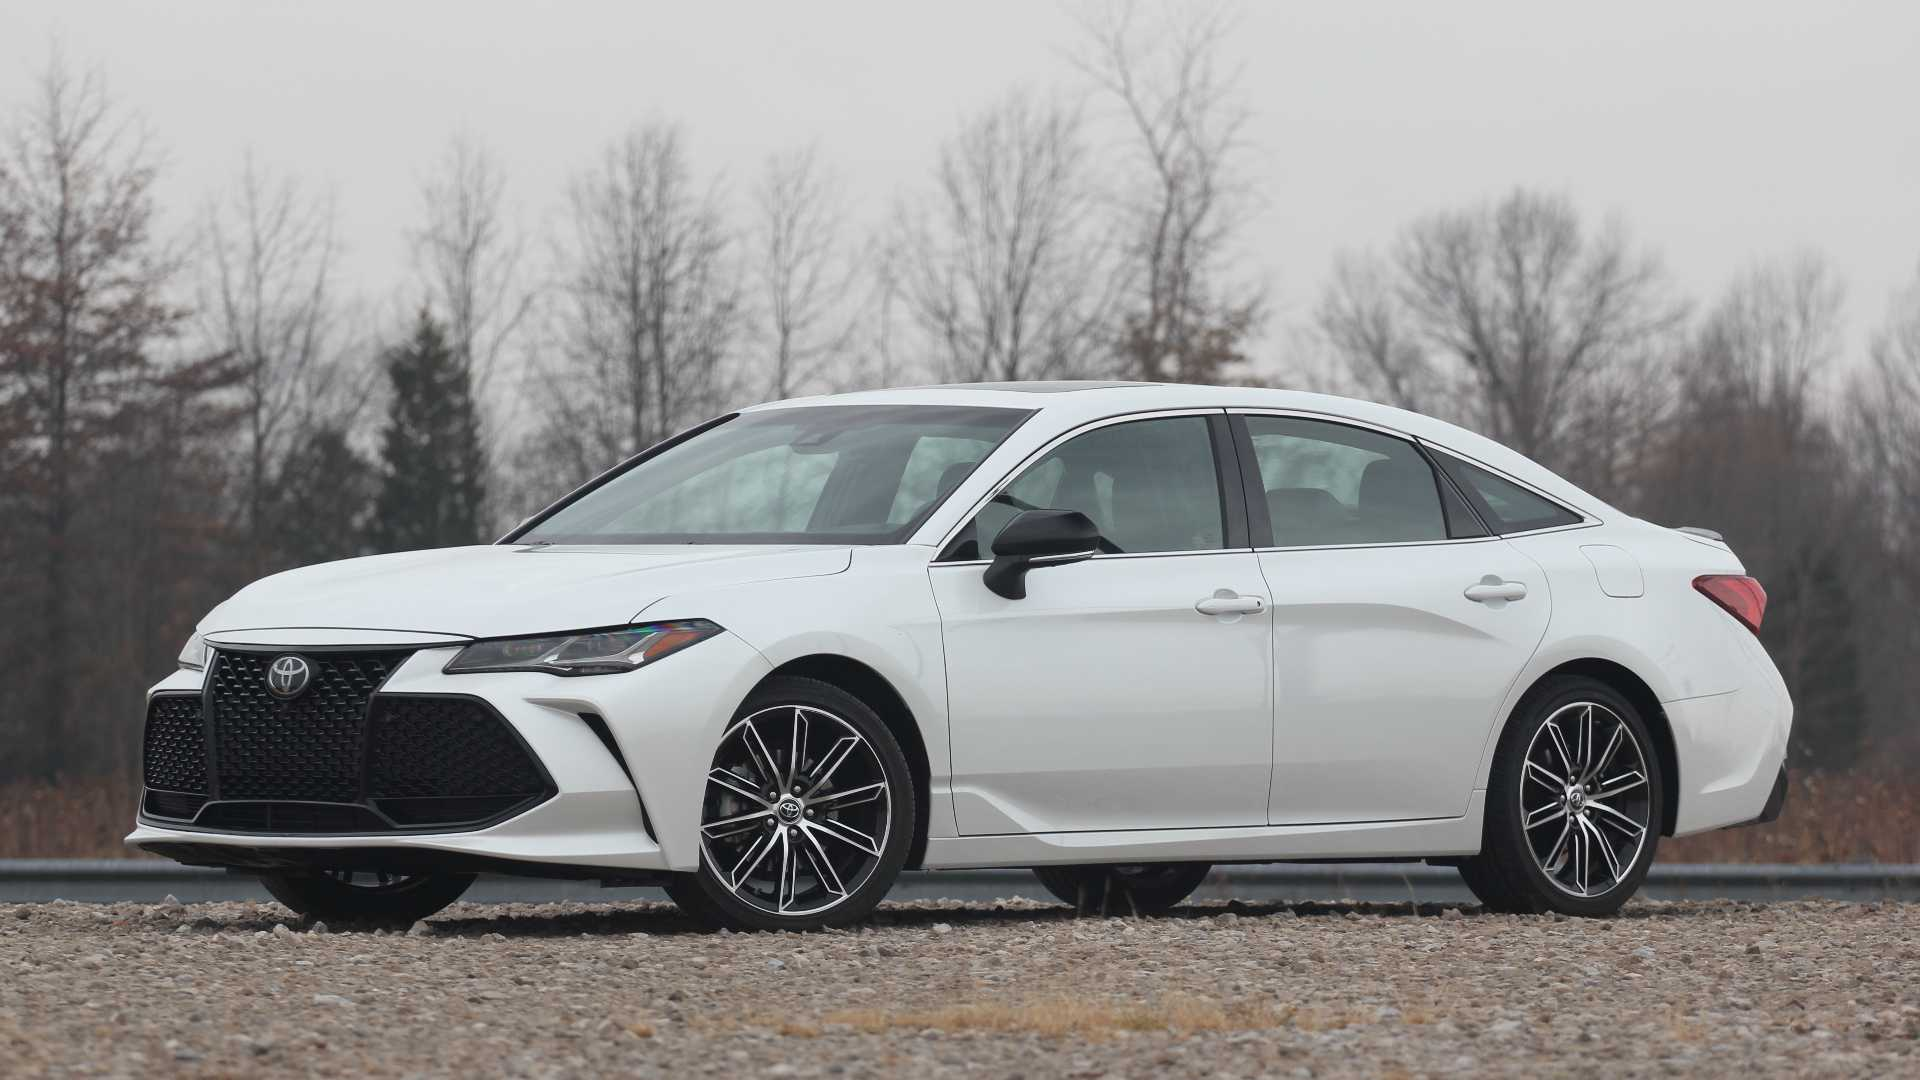 2019 Toyota Avalon Touring Review: Not Your Father's Avalon